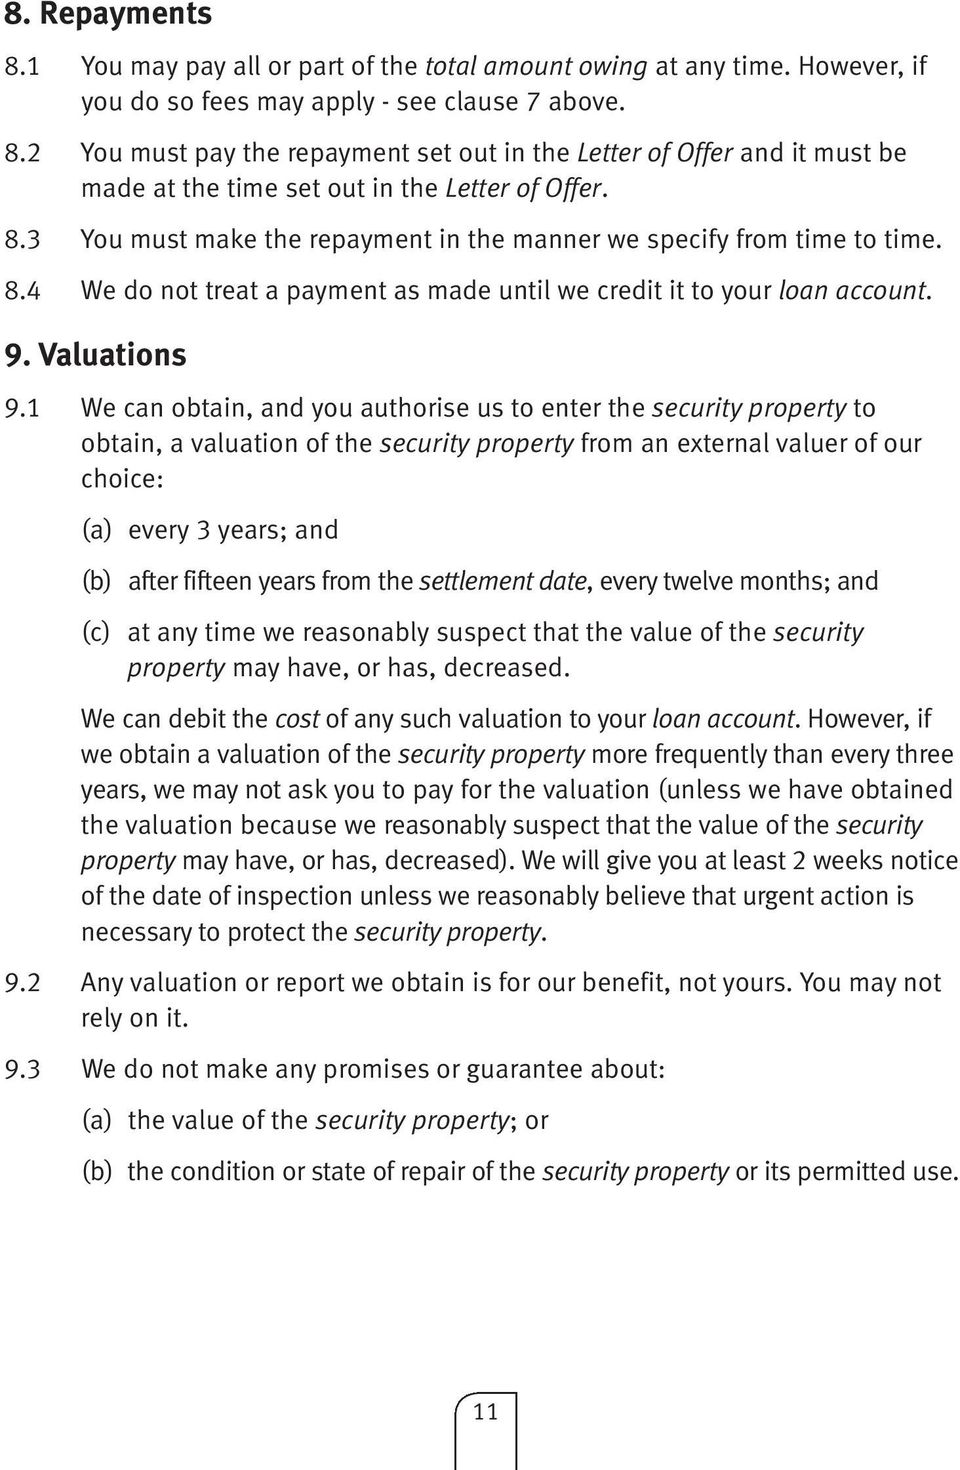 1 We can obtain, and you authorise us to enter the security property to obtain, a valuation of the security property from an external valuer of our choice: (a) every 3 years; and (b) after fifteen